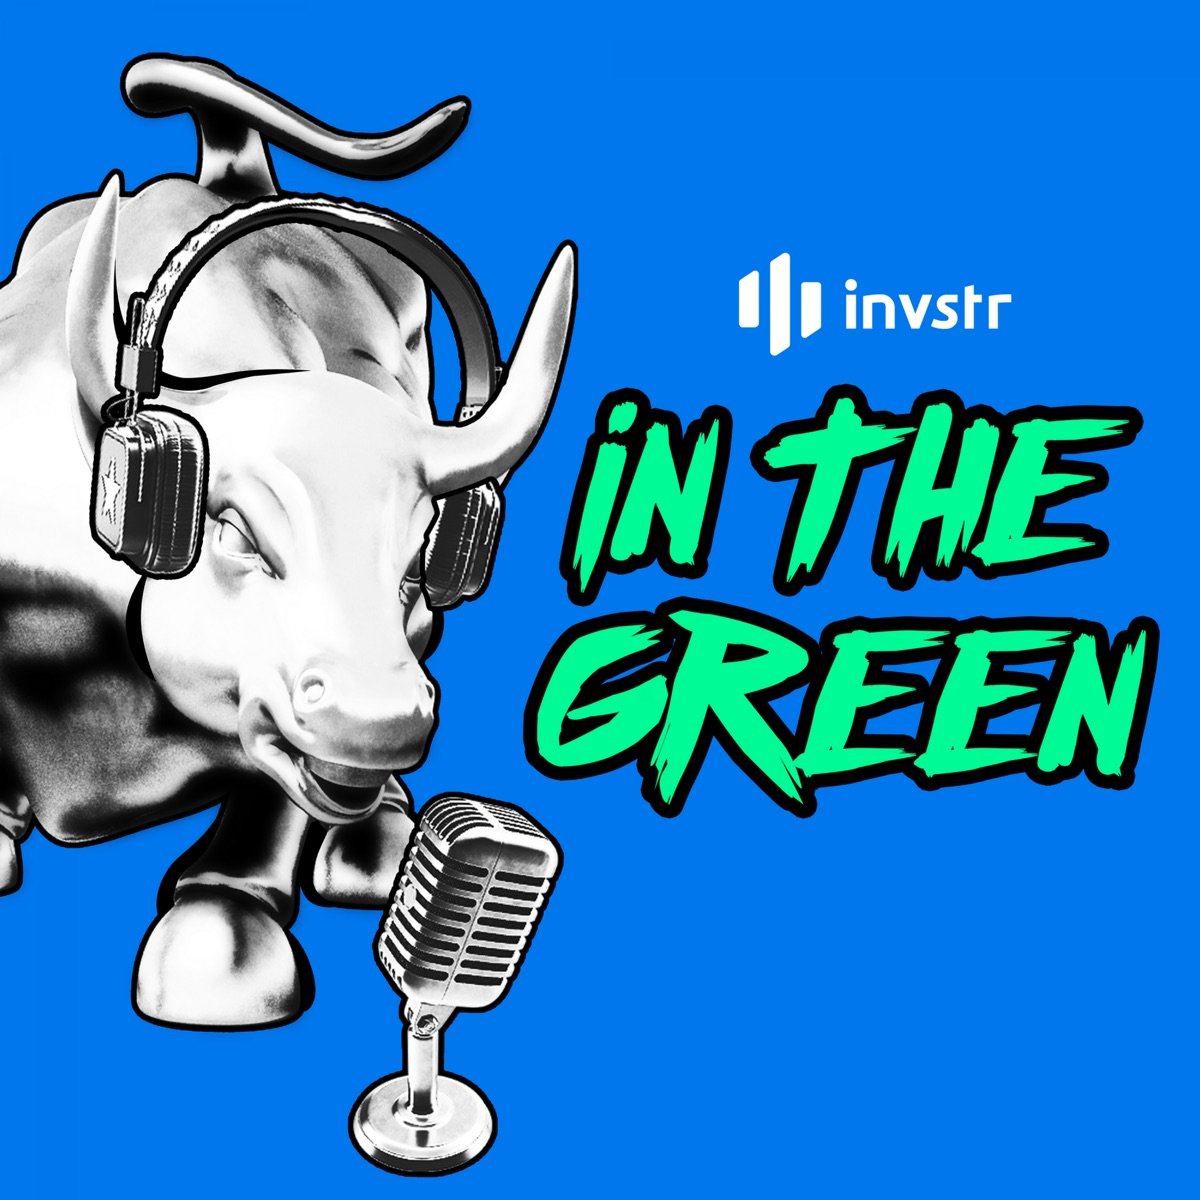 In The Green with Invstr